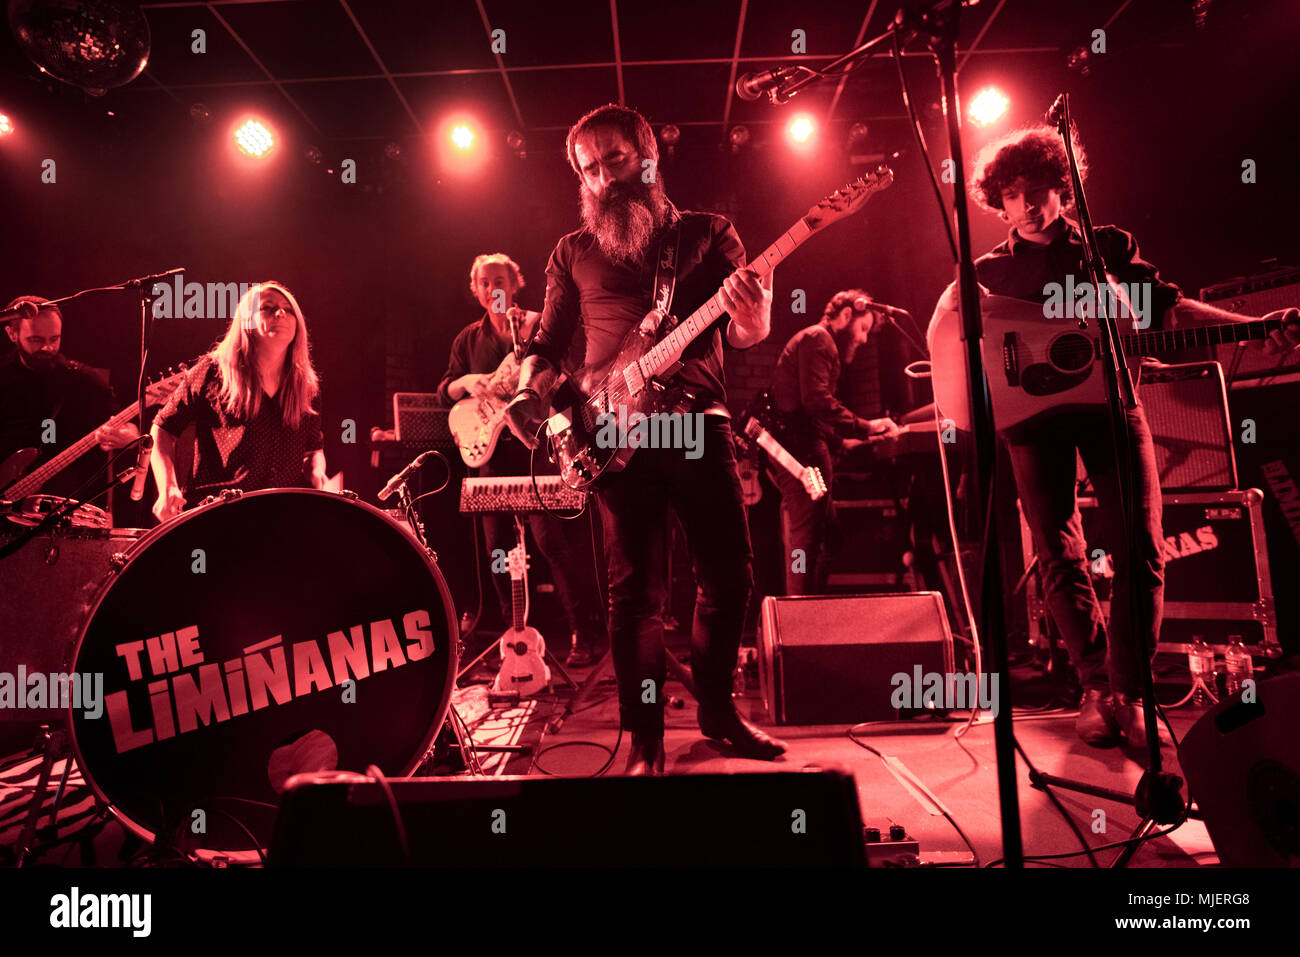 Leeds, UK. 4th May, 2018. French garage / psychedelic rock band The Luminanas in concert at The Brudenell Social Club, Leeds, UK, 4th May 2018. Group founders Lio and Marie Limiñana on guitar and drums respectively. Credit: John Bentley/Alamy Live News - Stock Image